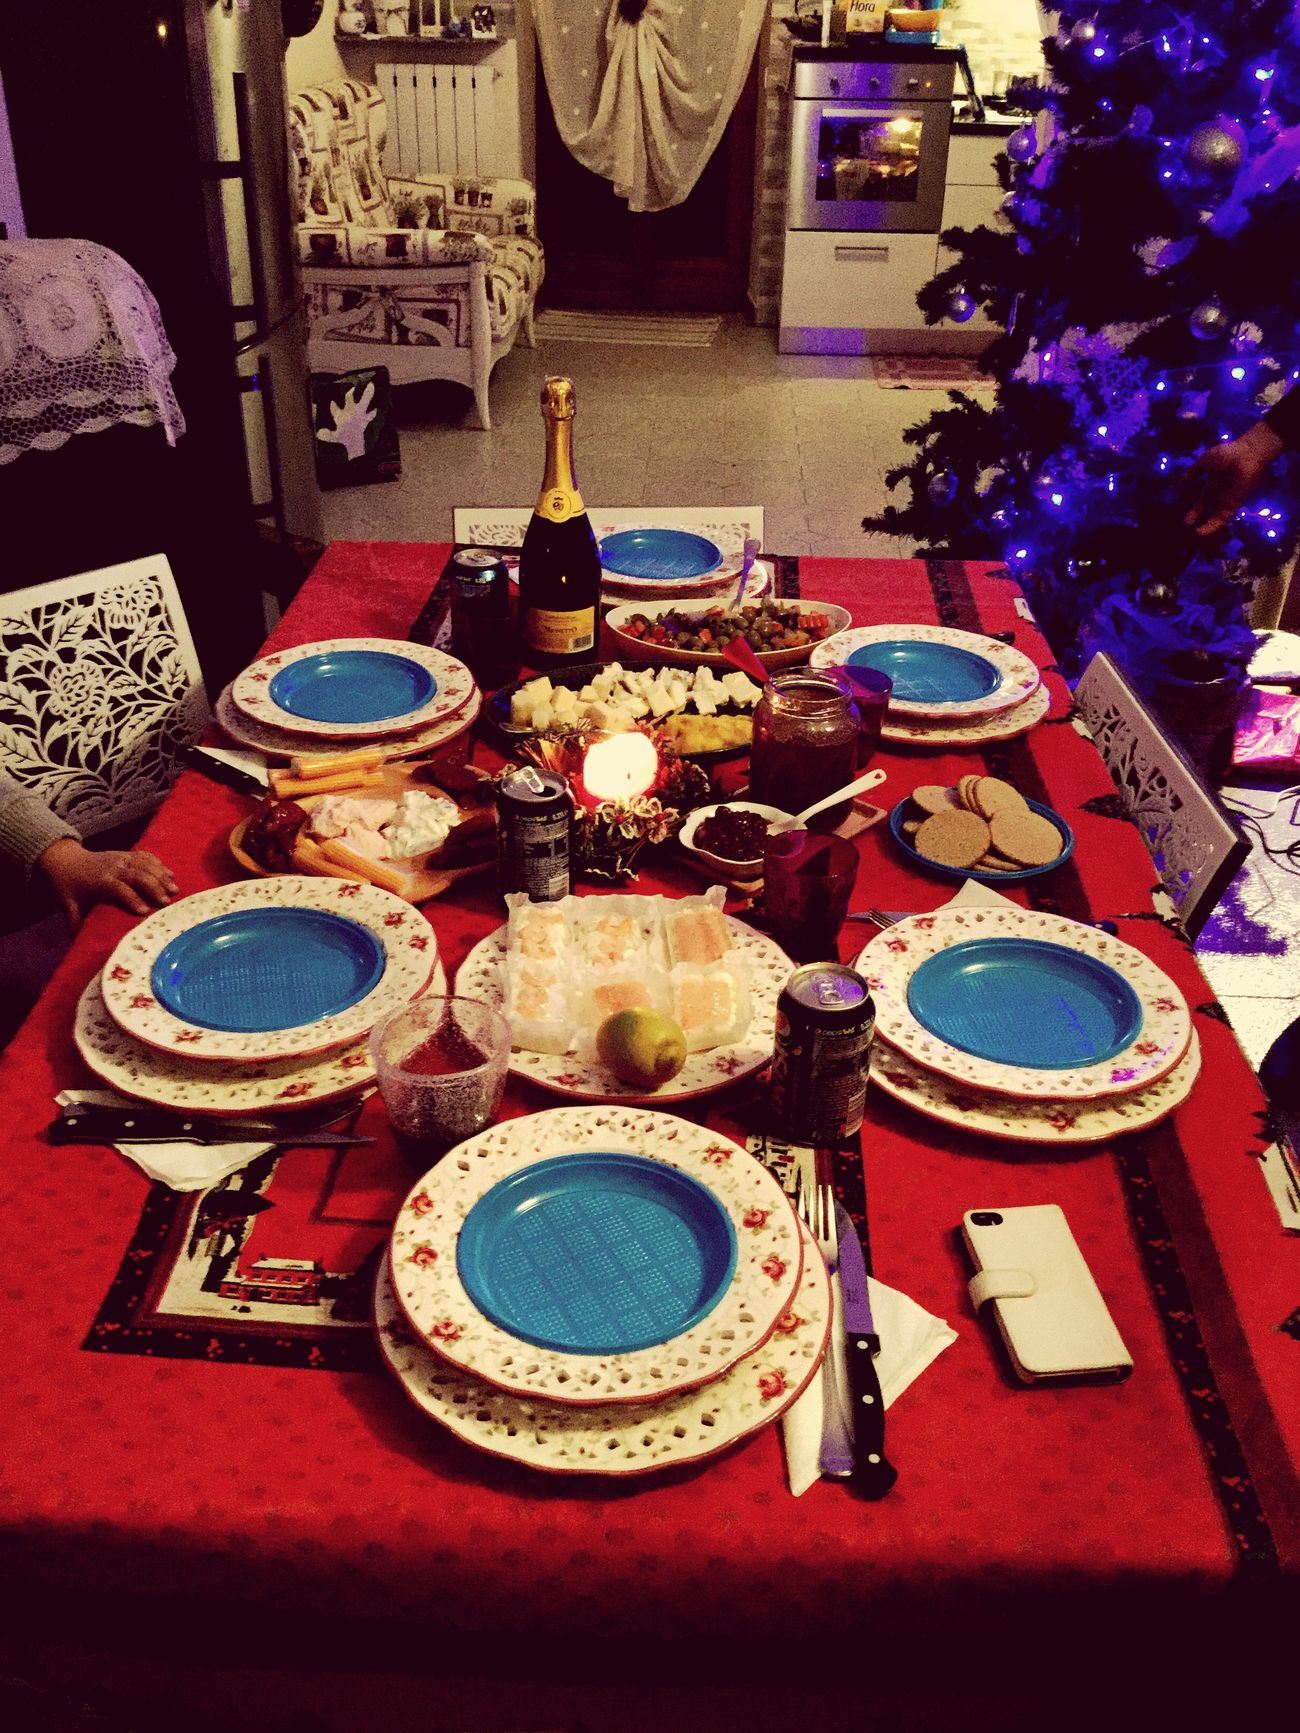 Setting Xmas table for din dins Taking Photos